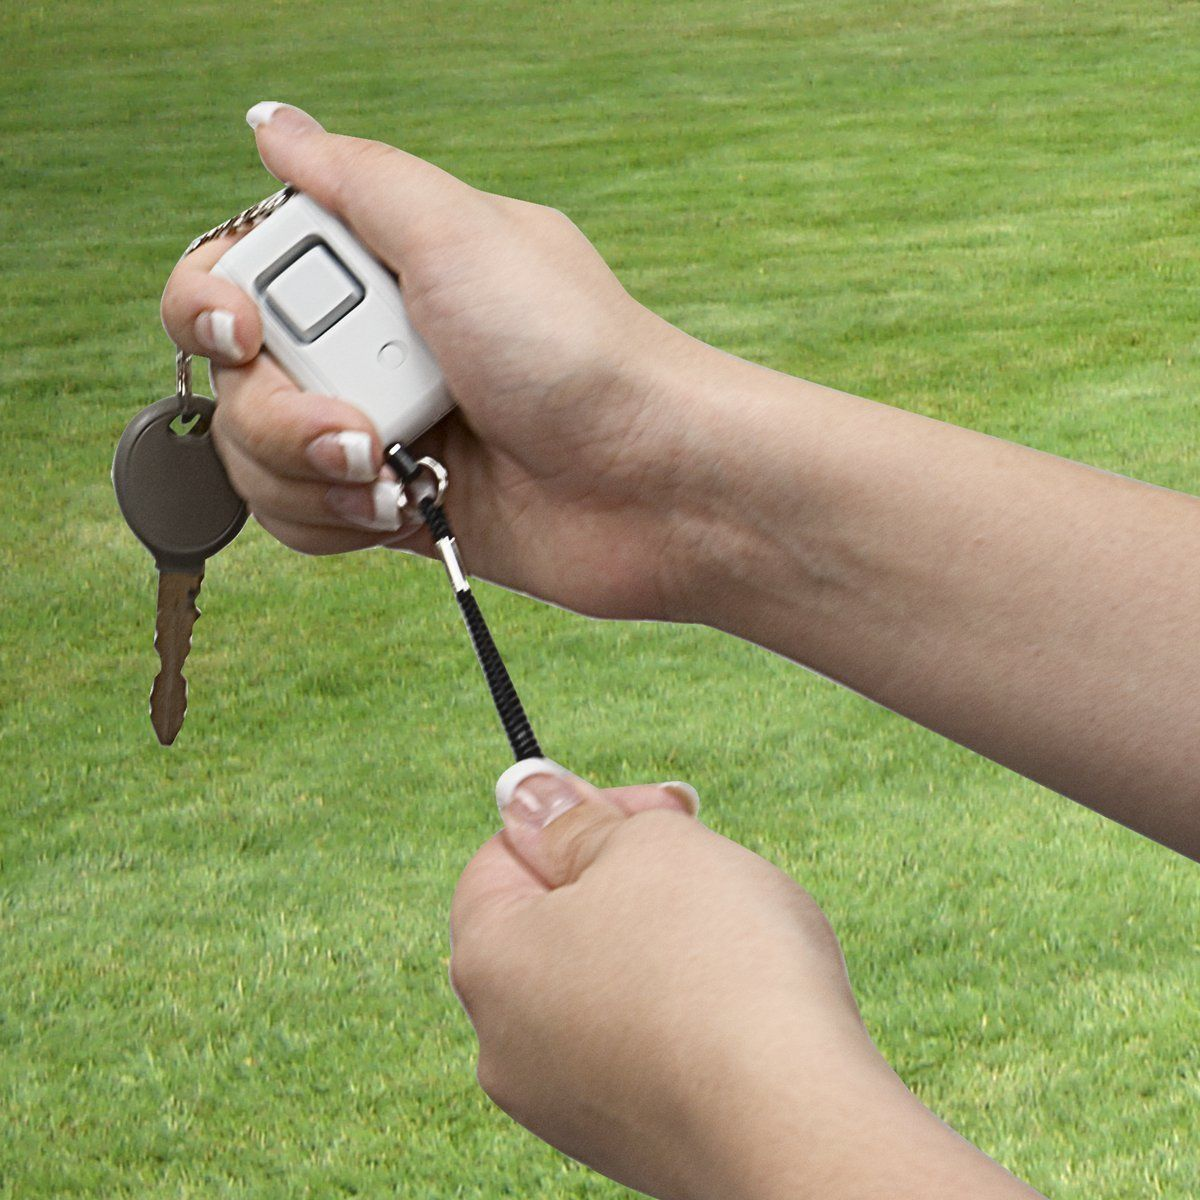 Personal Security Keychain Alarm - Use Case